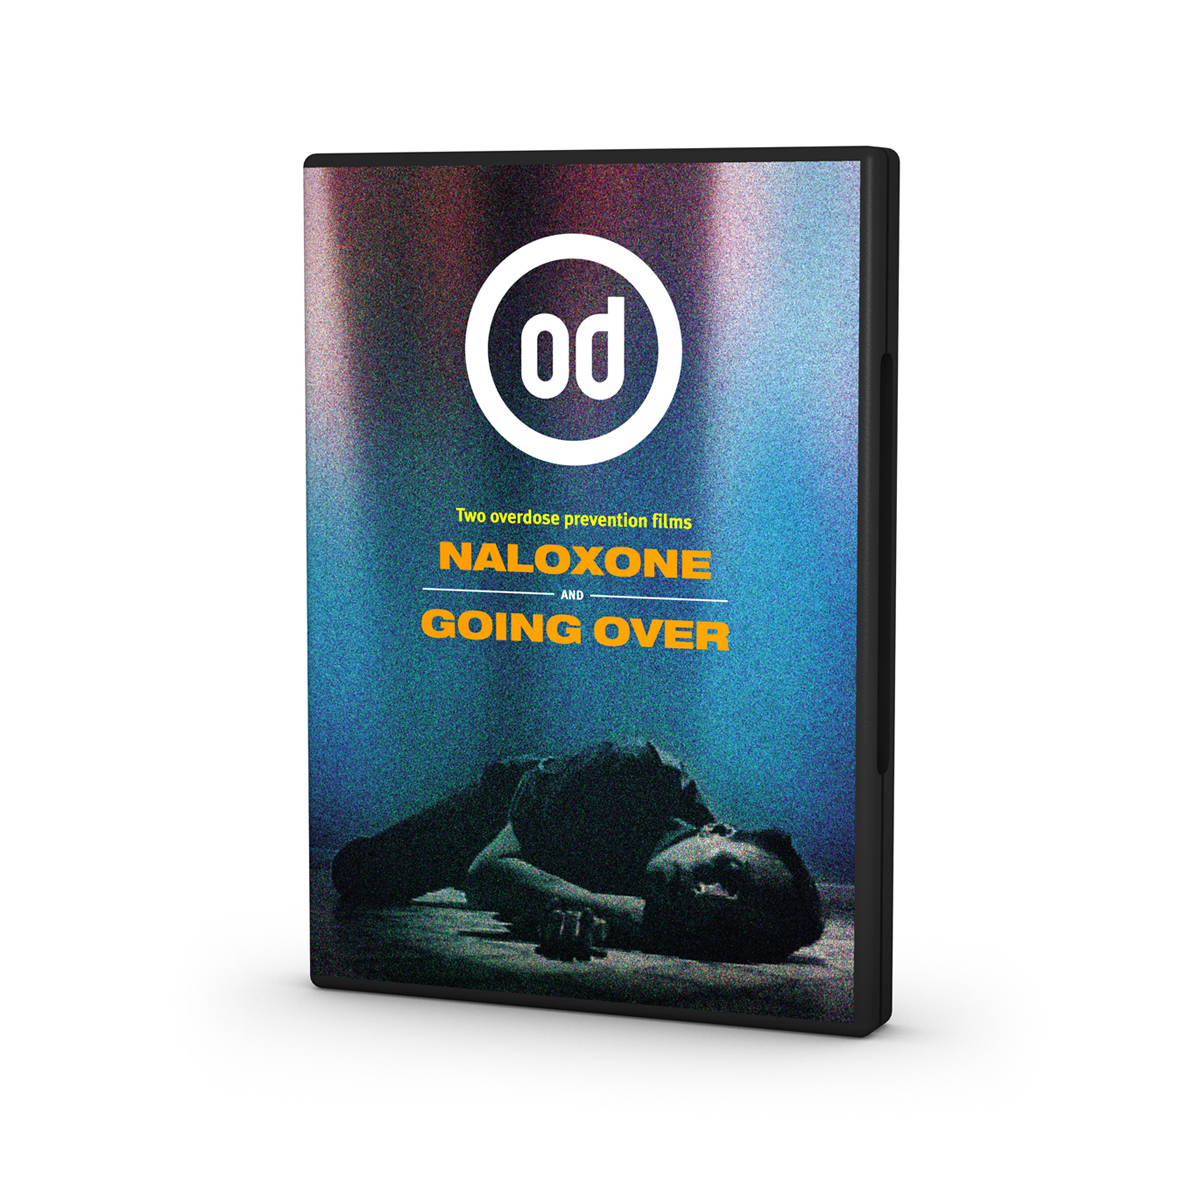 Naloxone and Going Over DVD (display case)